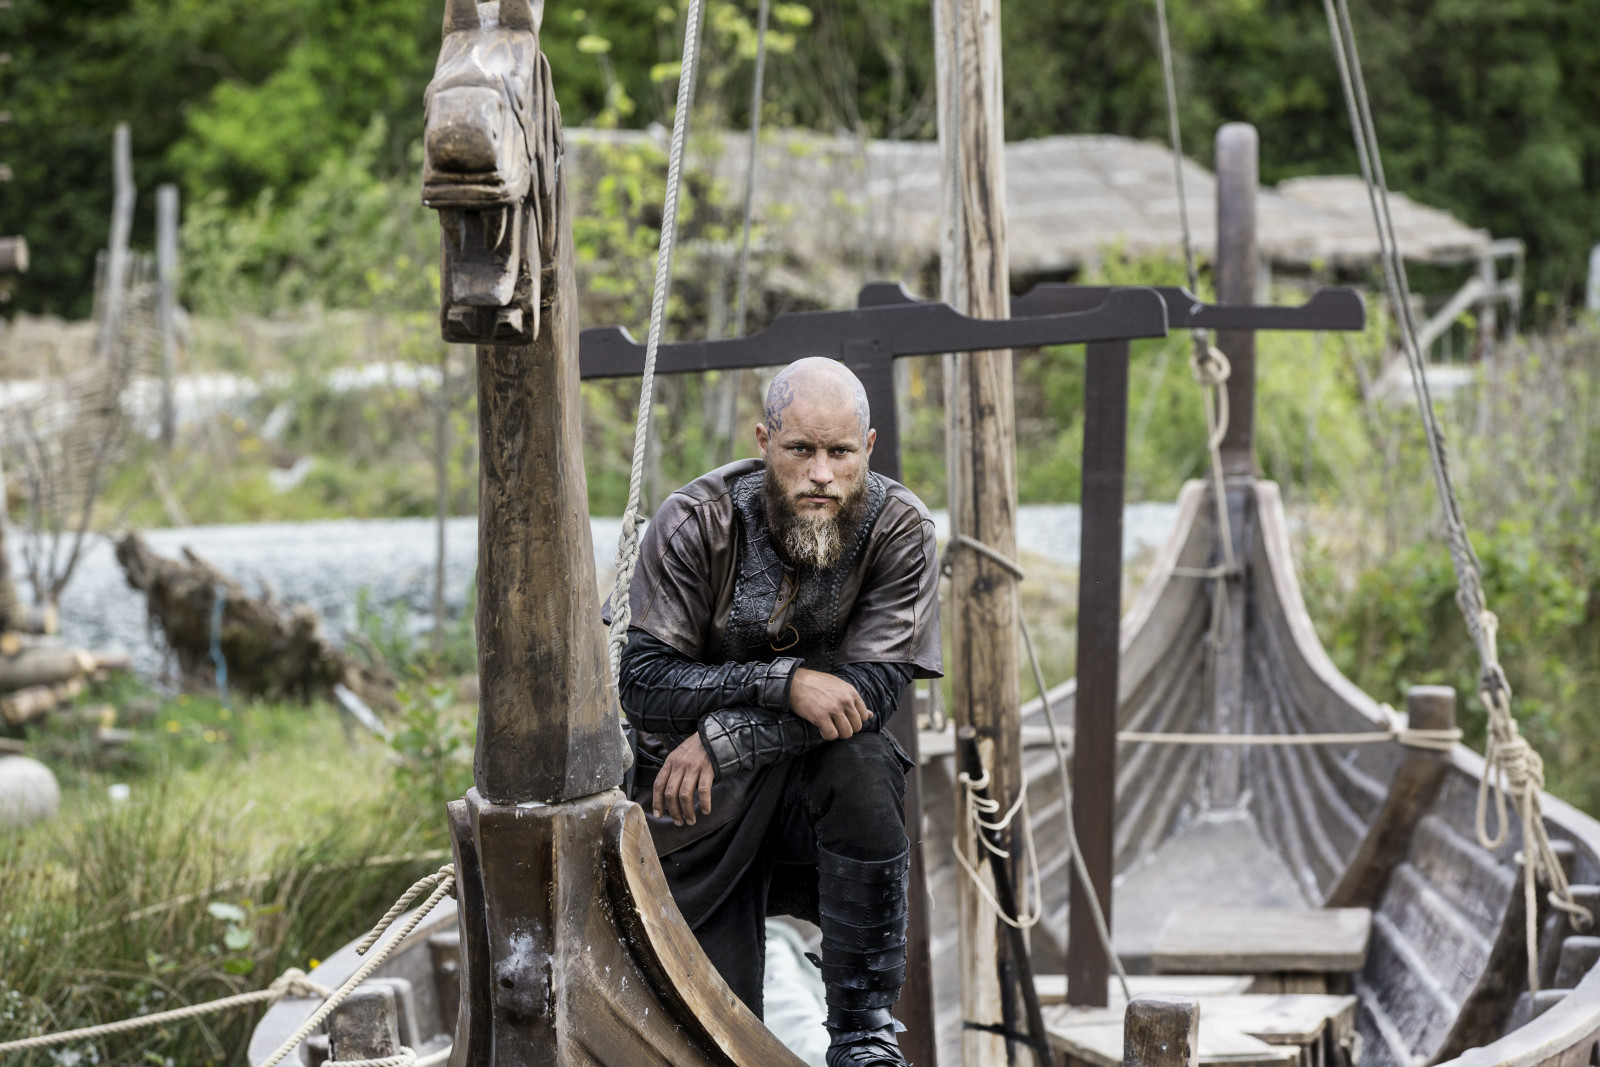 Vikings Season 4 Ragnar Lothbrok Official Picture